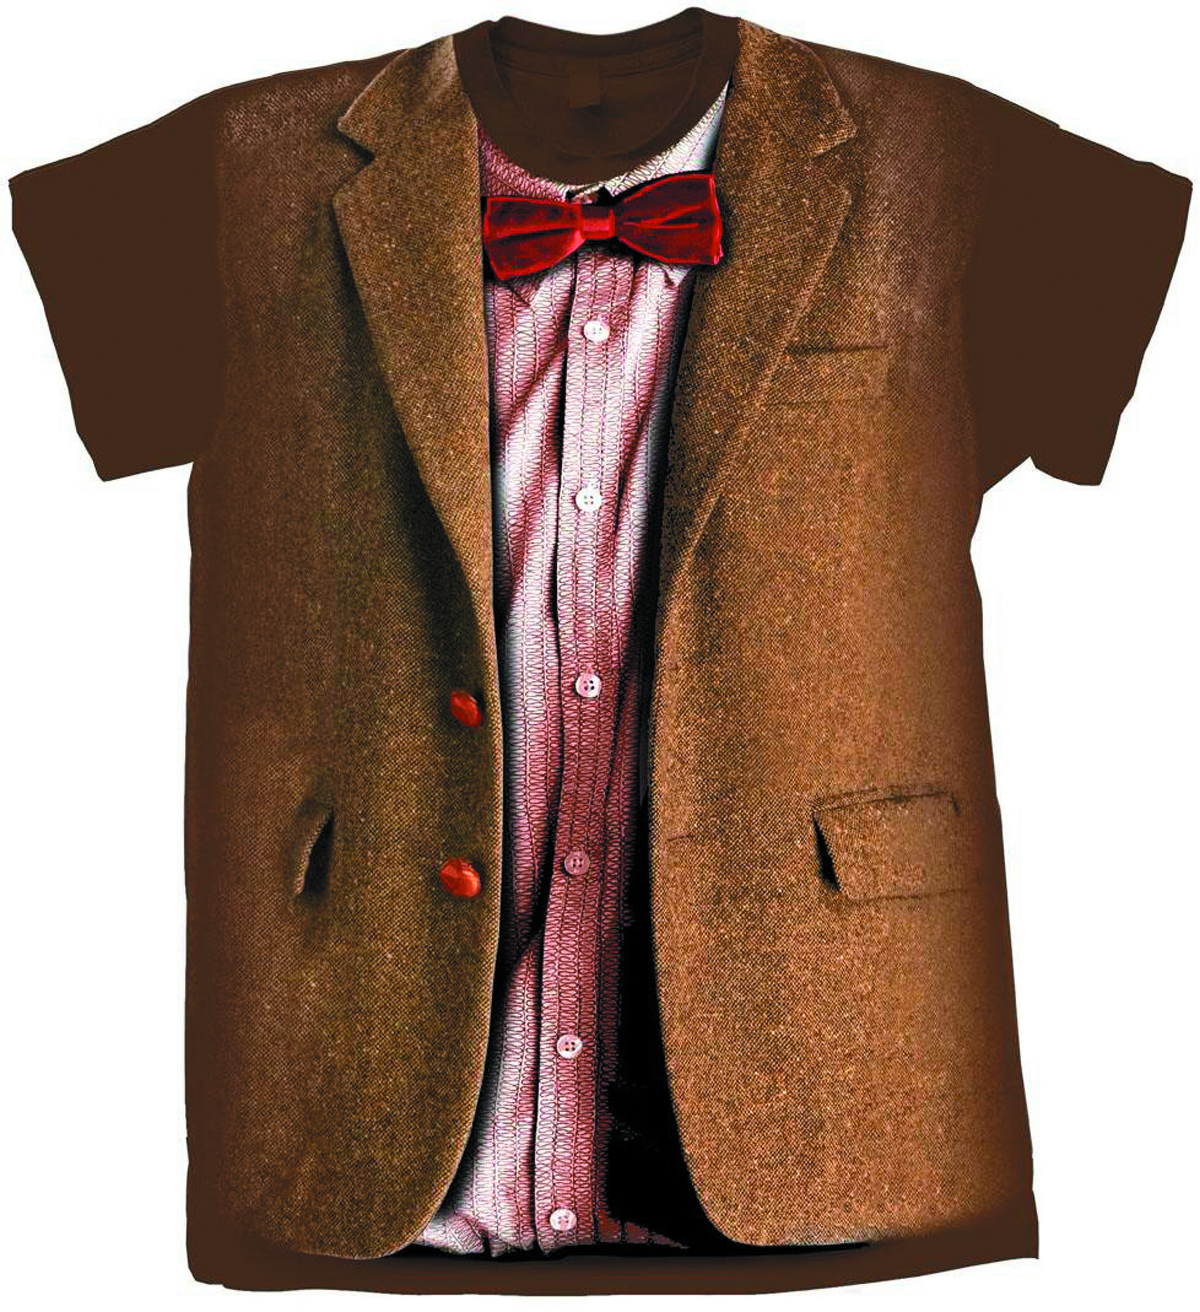 DOCTOR WHO ELEVENTH DOCTOR COSTUME T/S XL